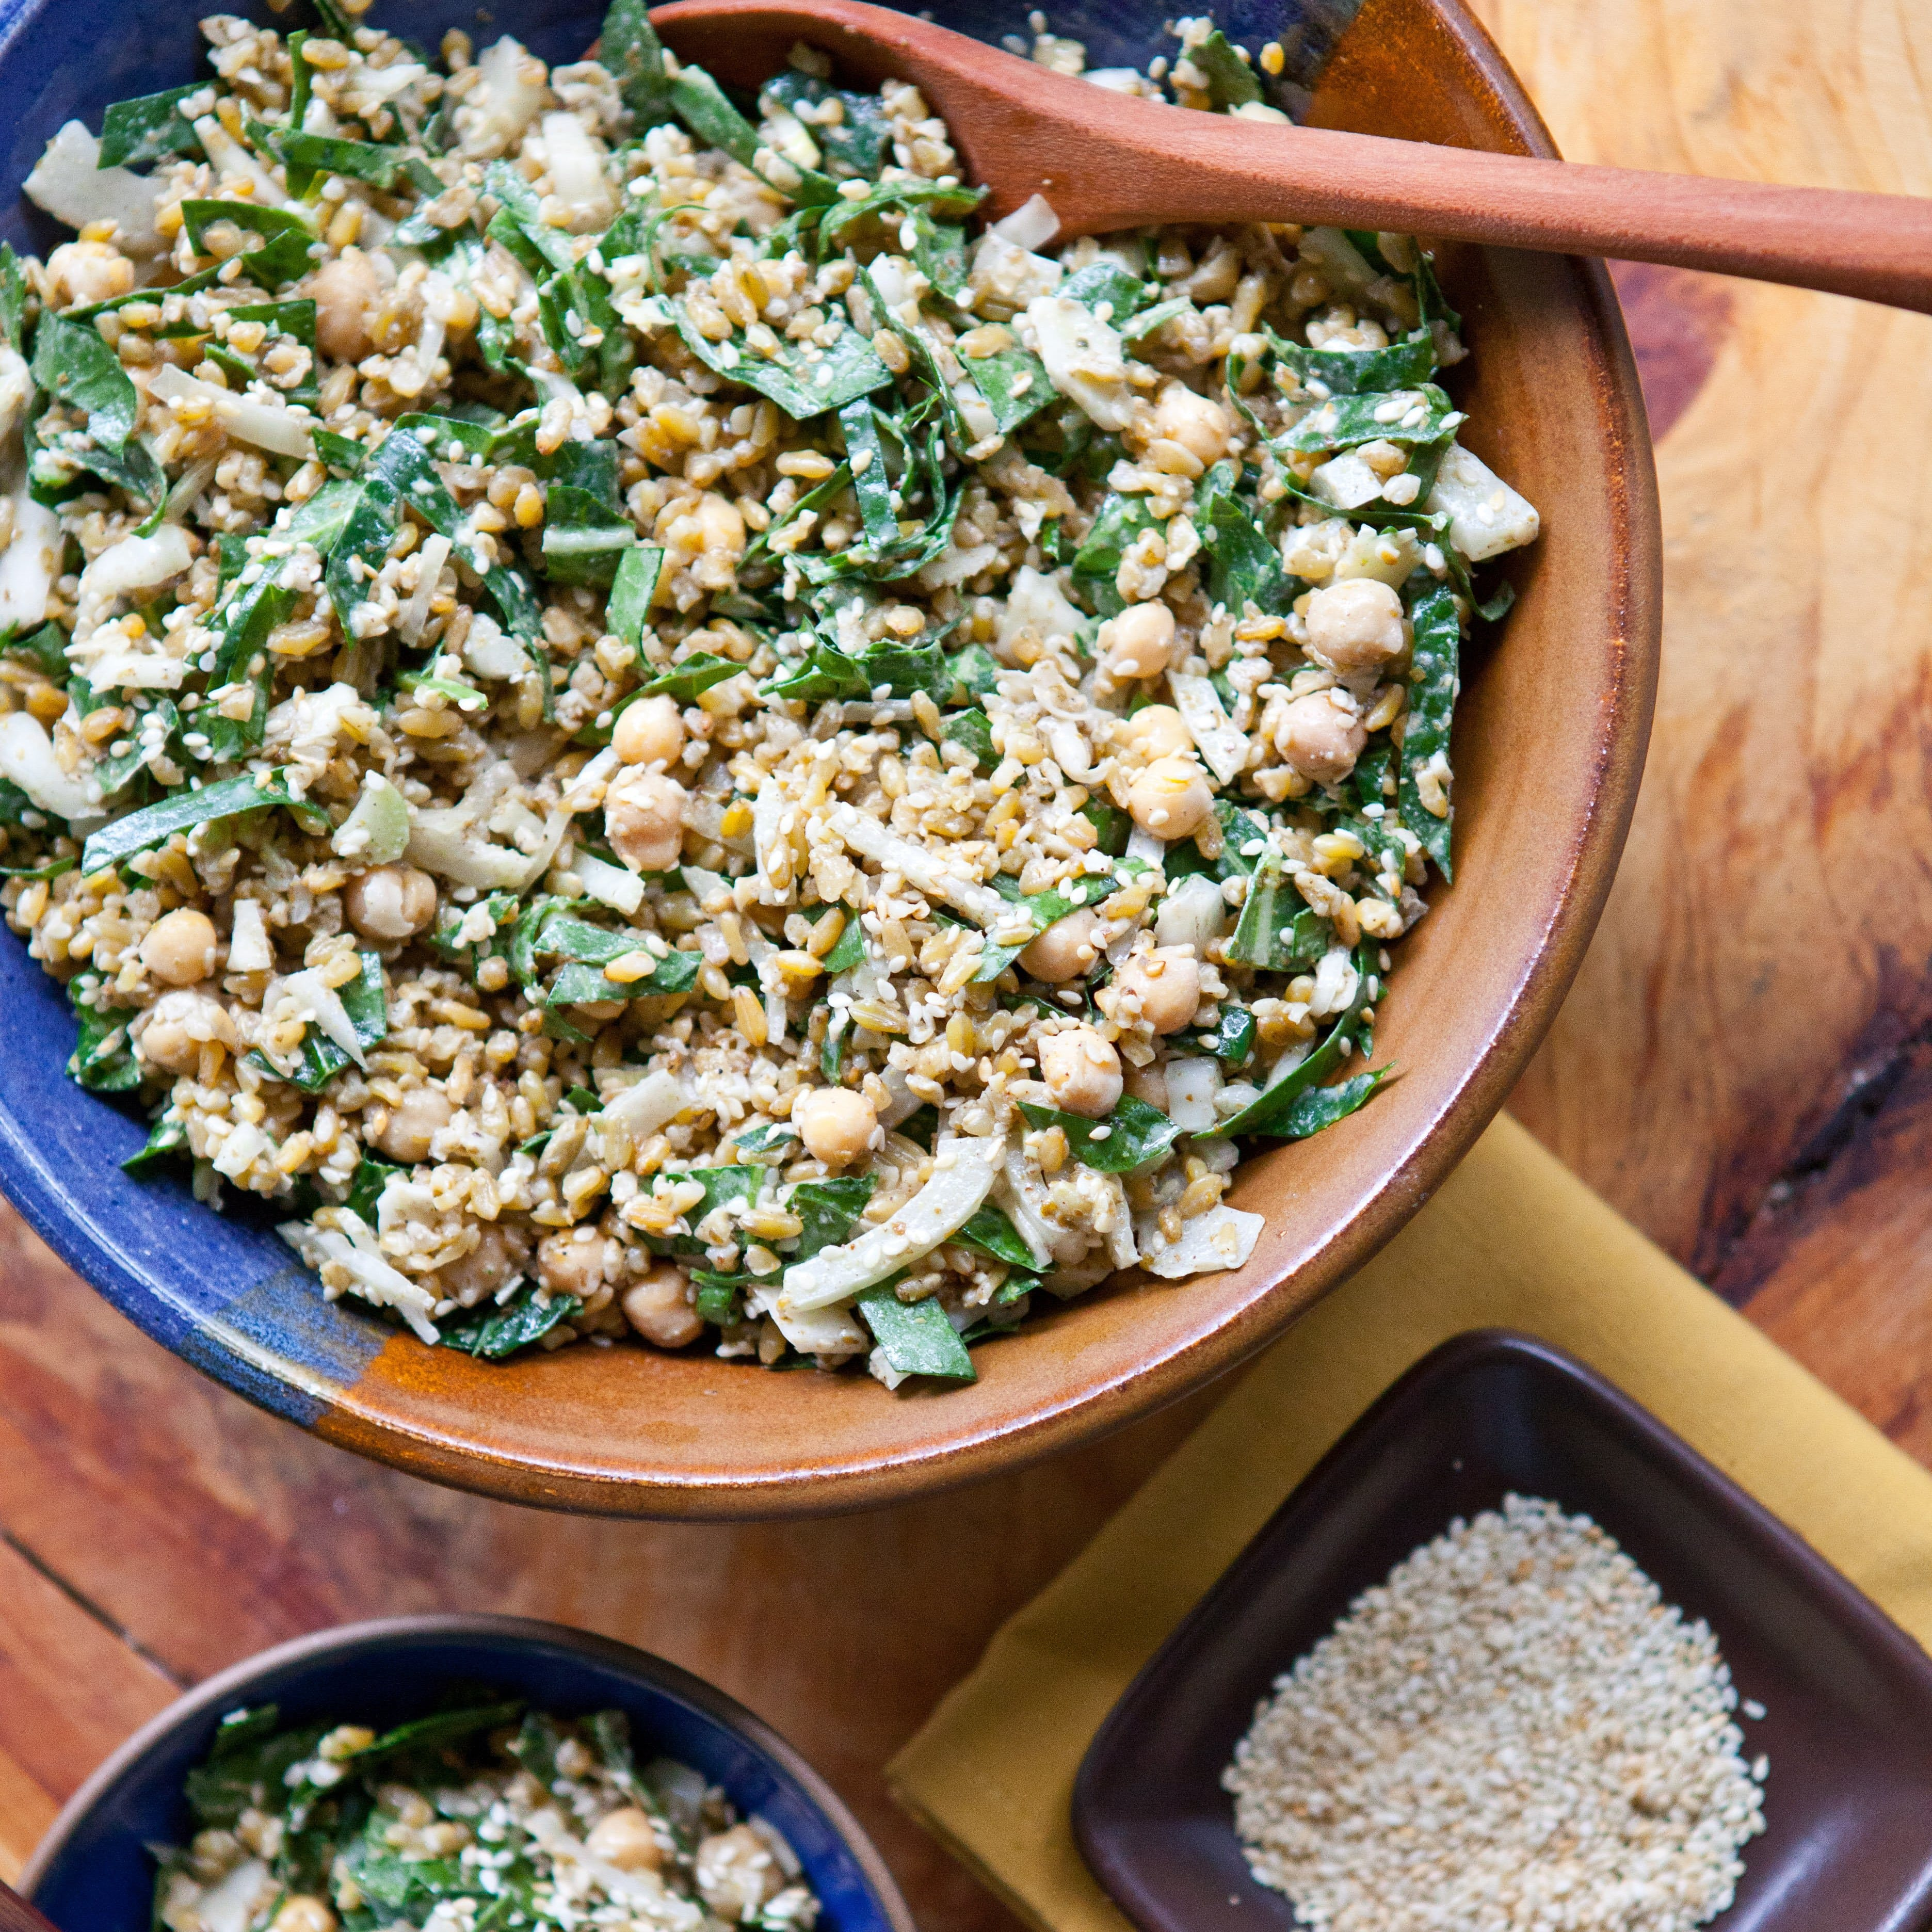 Mediterranean Freekeh Salad with Collard Greens and Chickpeas